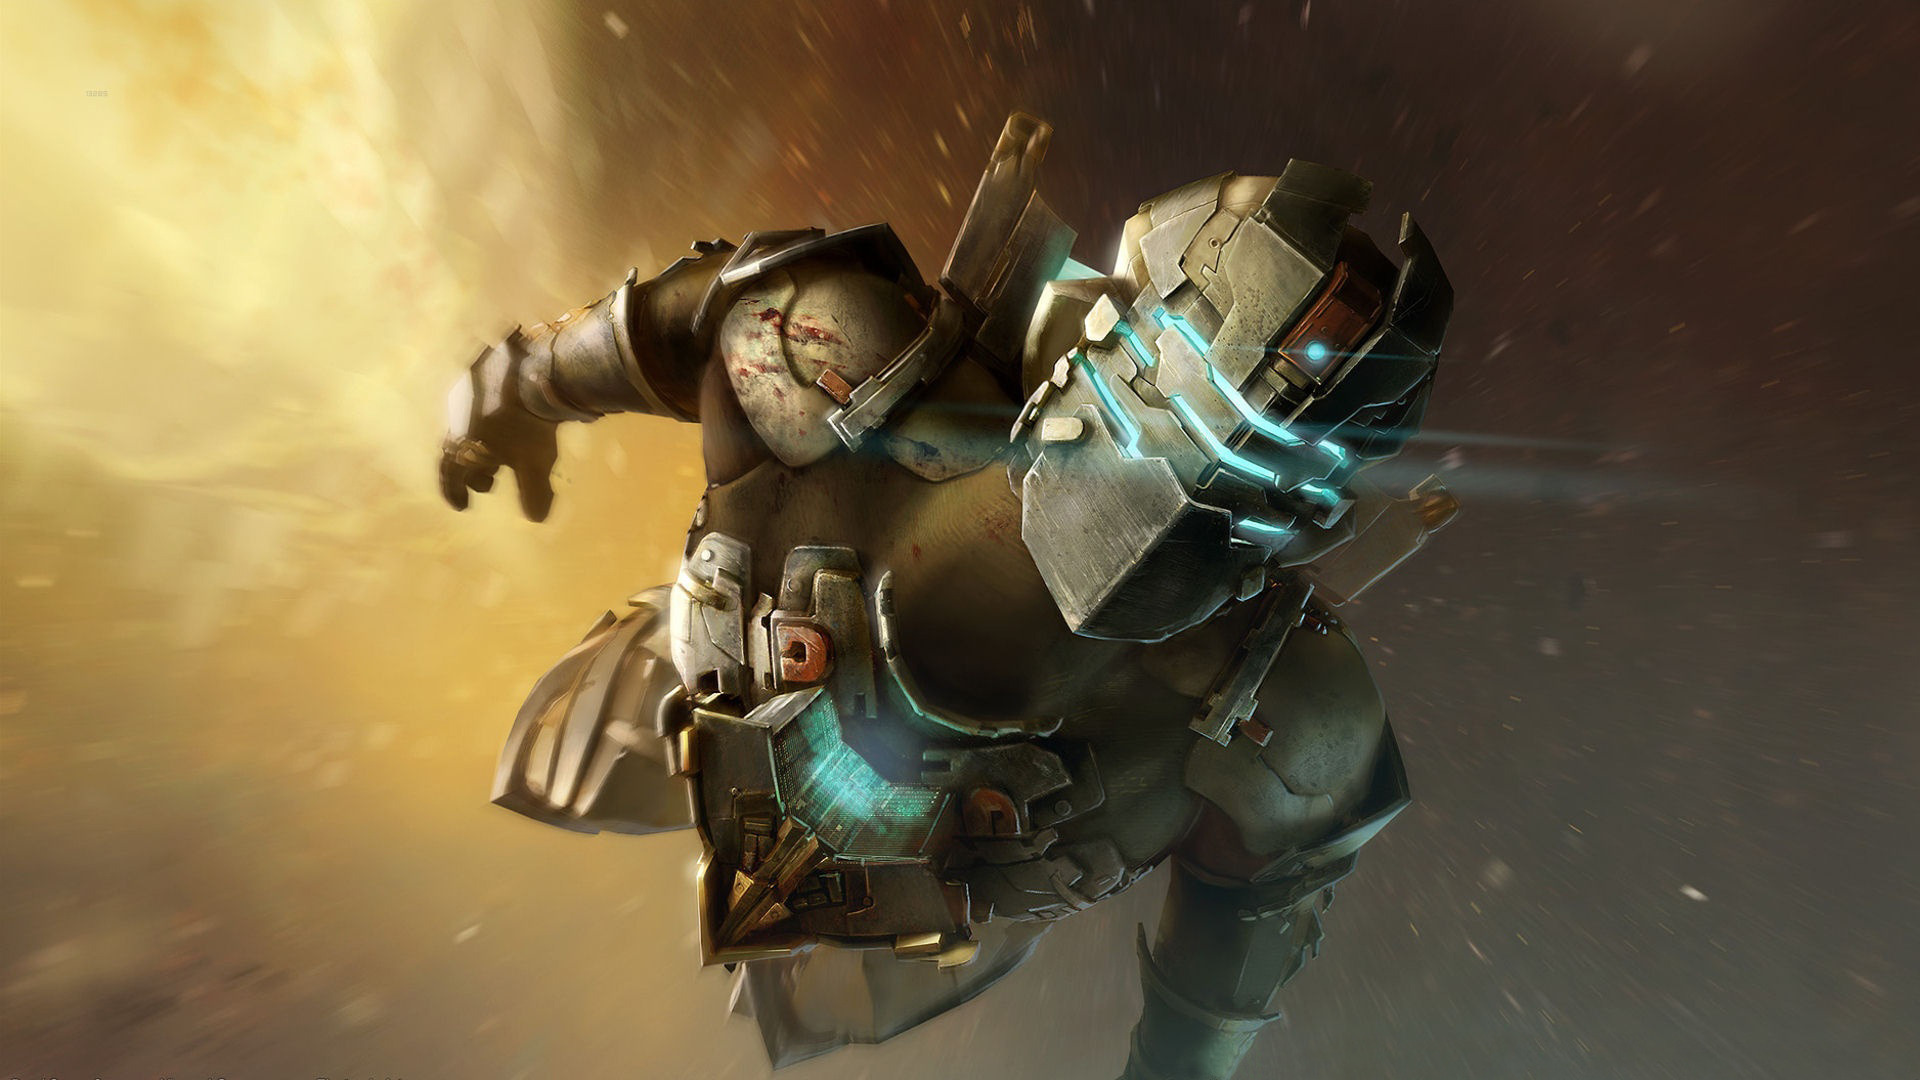 Dead Space 3 Wallpapers HD Wallpapers 1920x1080